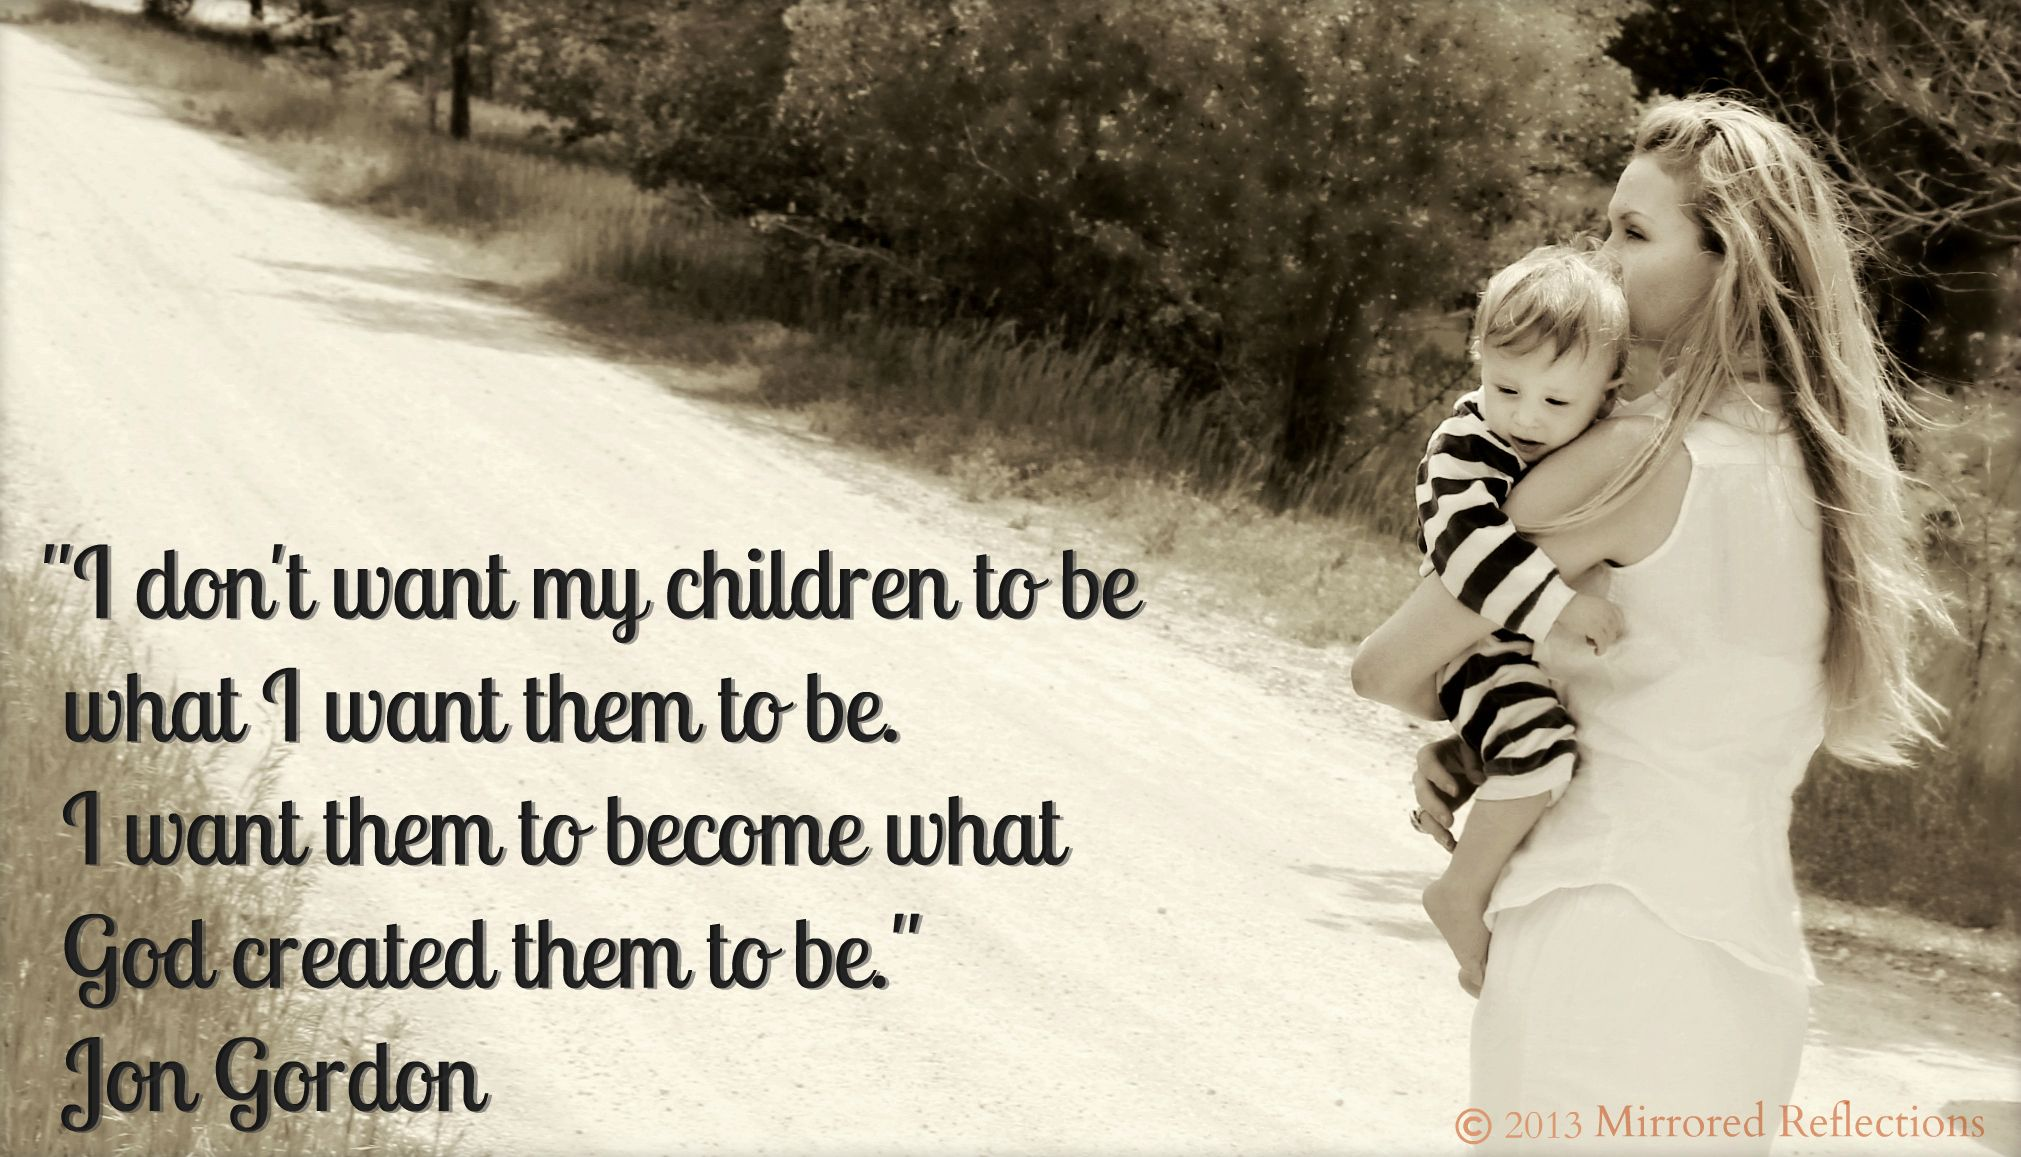 """""""I don't want my children to be what I want them to be. I want them to become what God created them to be."""" Jon Gordon image provided by Mirrored Reflections"""